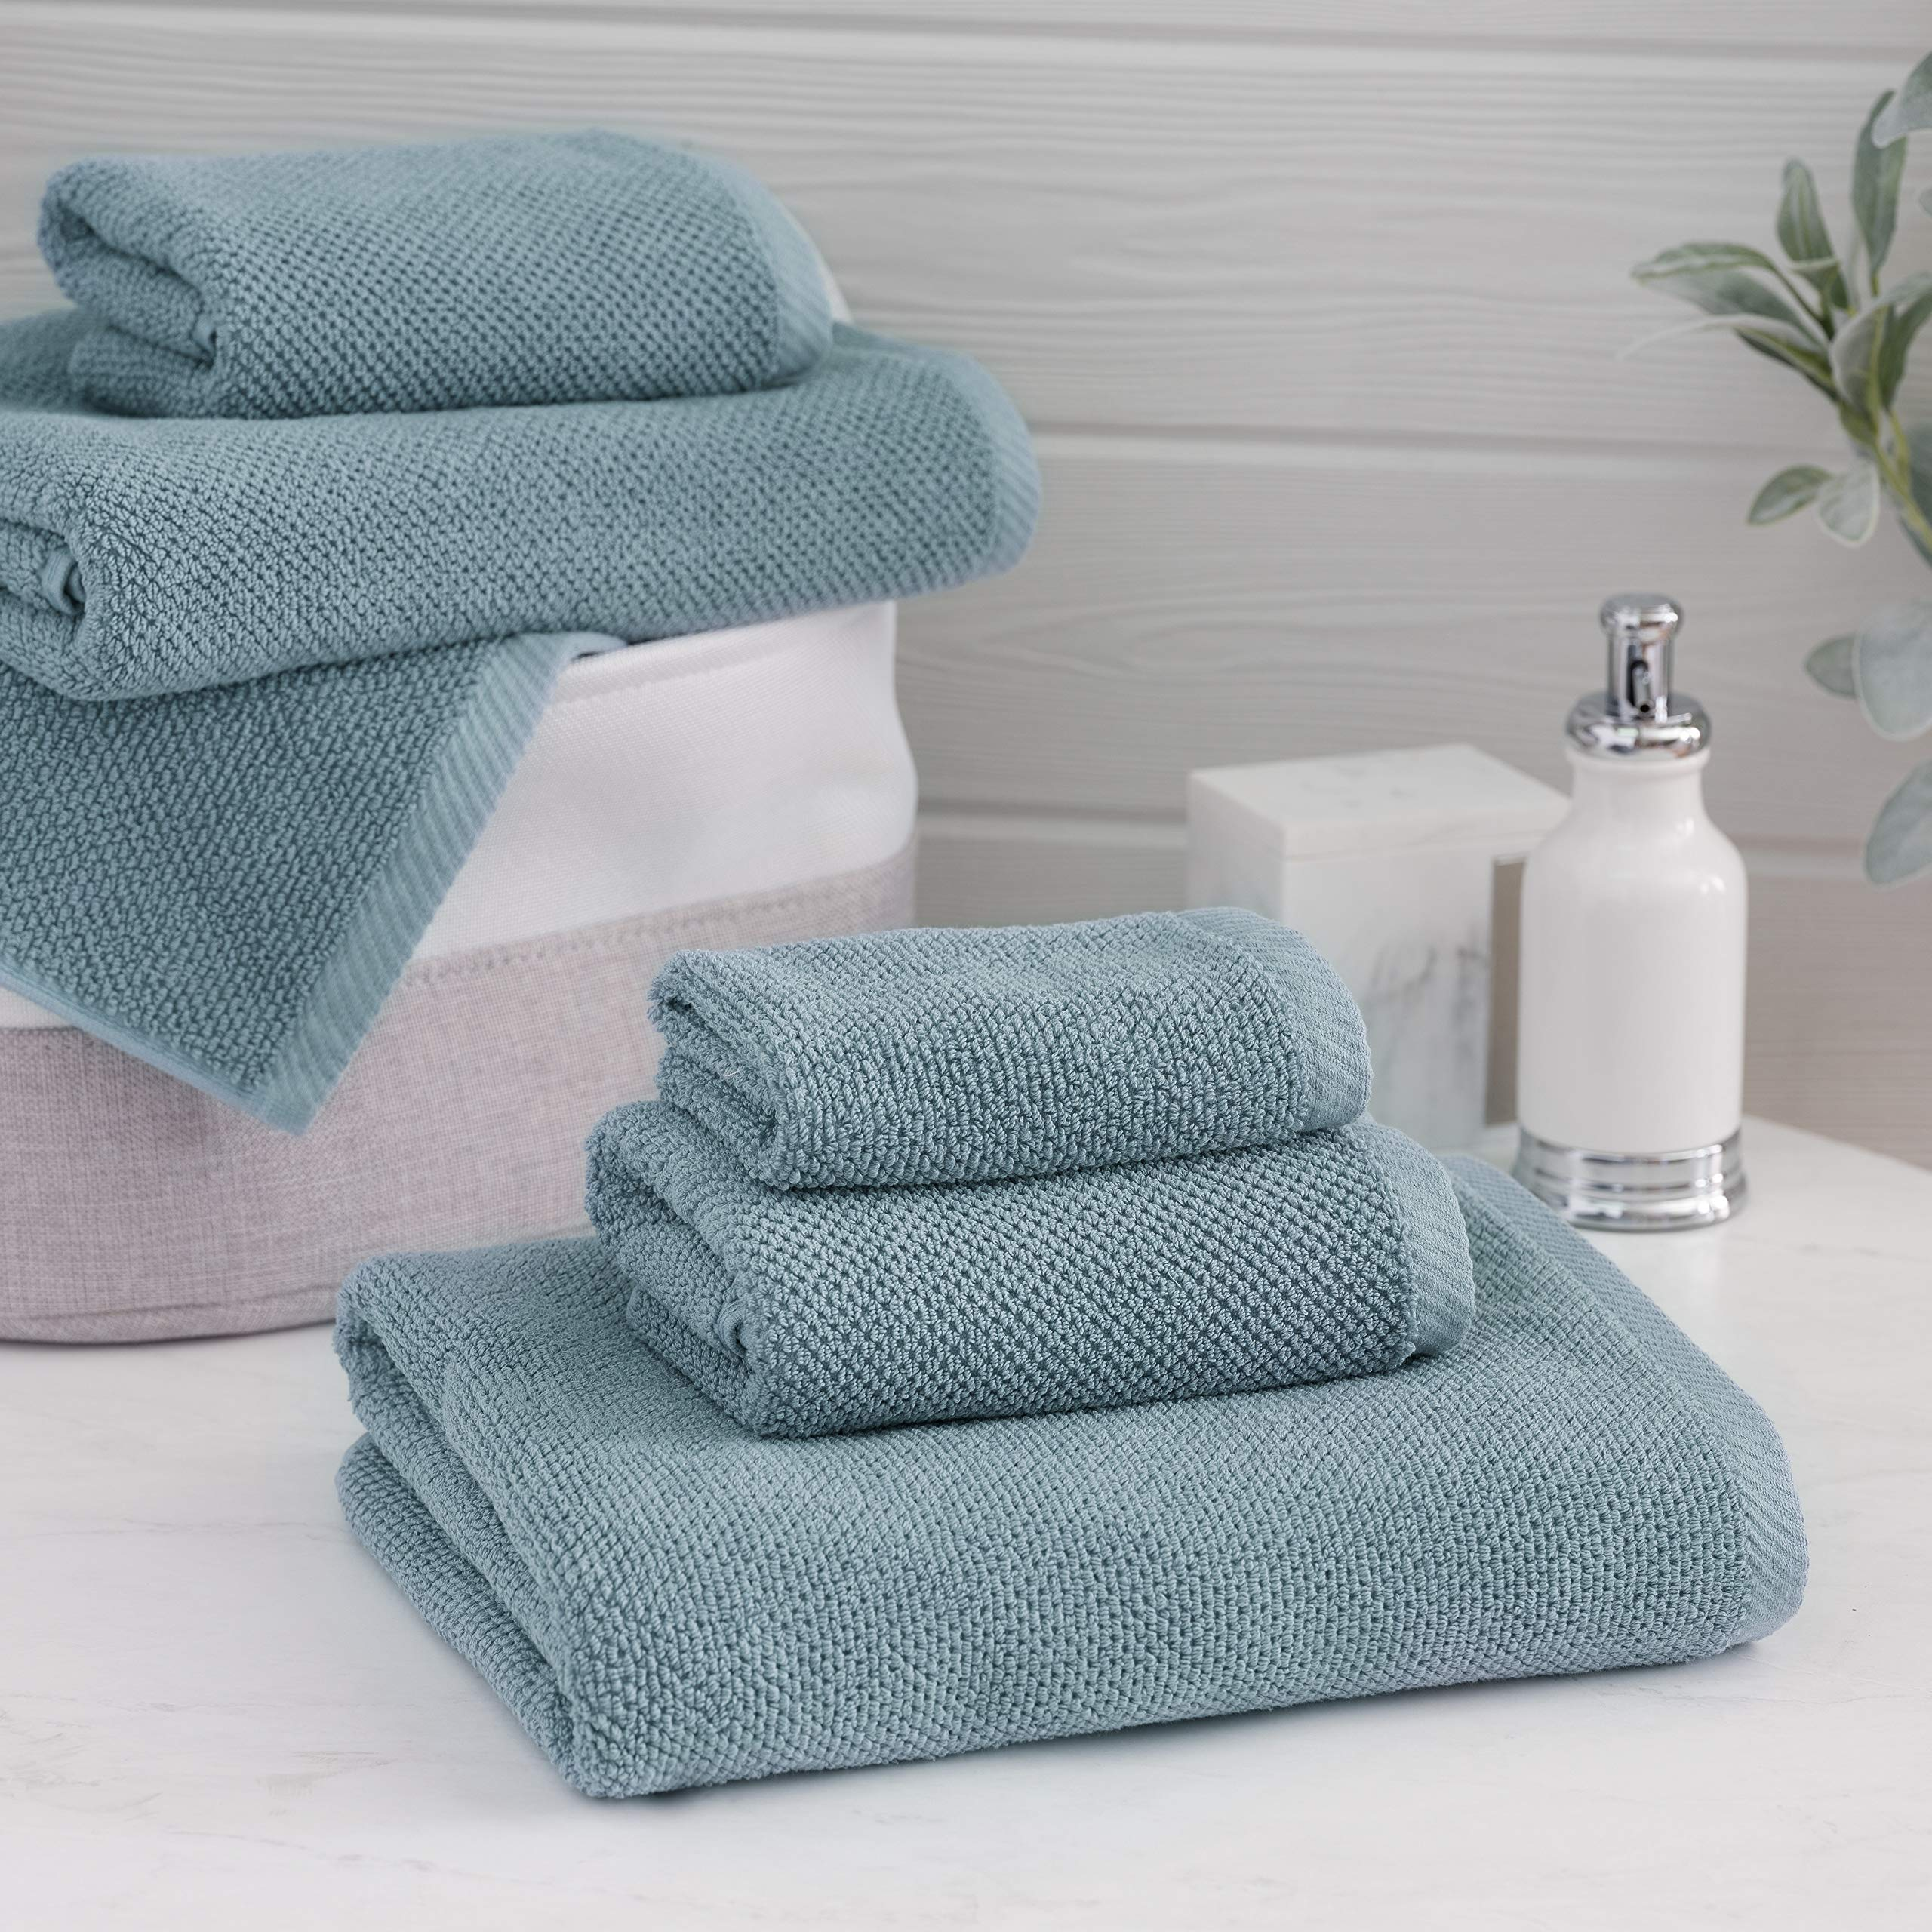 CDM product Welhome Franklin 100% Cotton Textured Towel (Dusty Blue) - Set of 6 - Highly Absorbent - Combed Cotton - Durable - Low Lint - 600 GSM - Machine Washable : 2 Bath Towels - 2 Hand Towels - 2 Wash Towels small thumbnail image